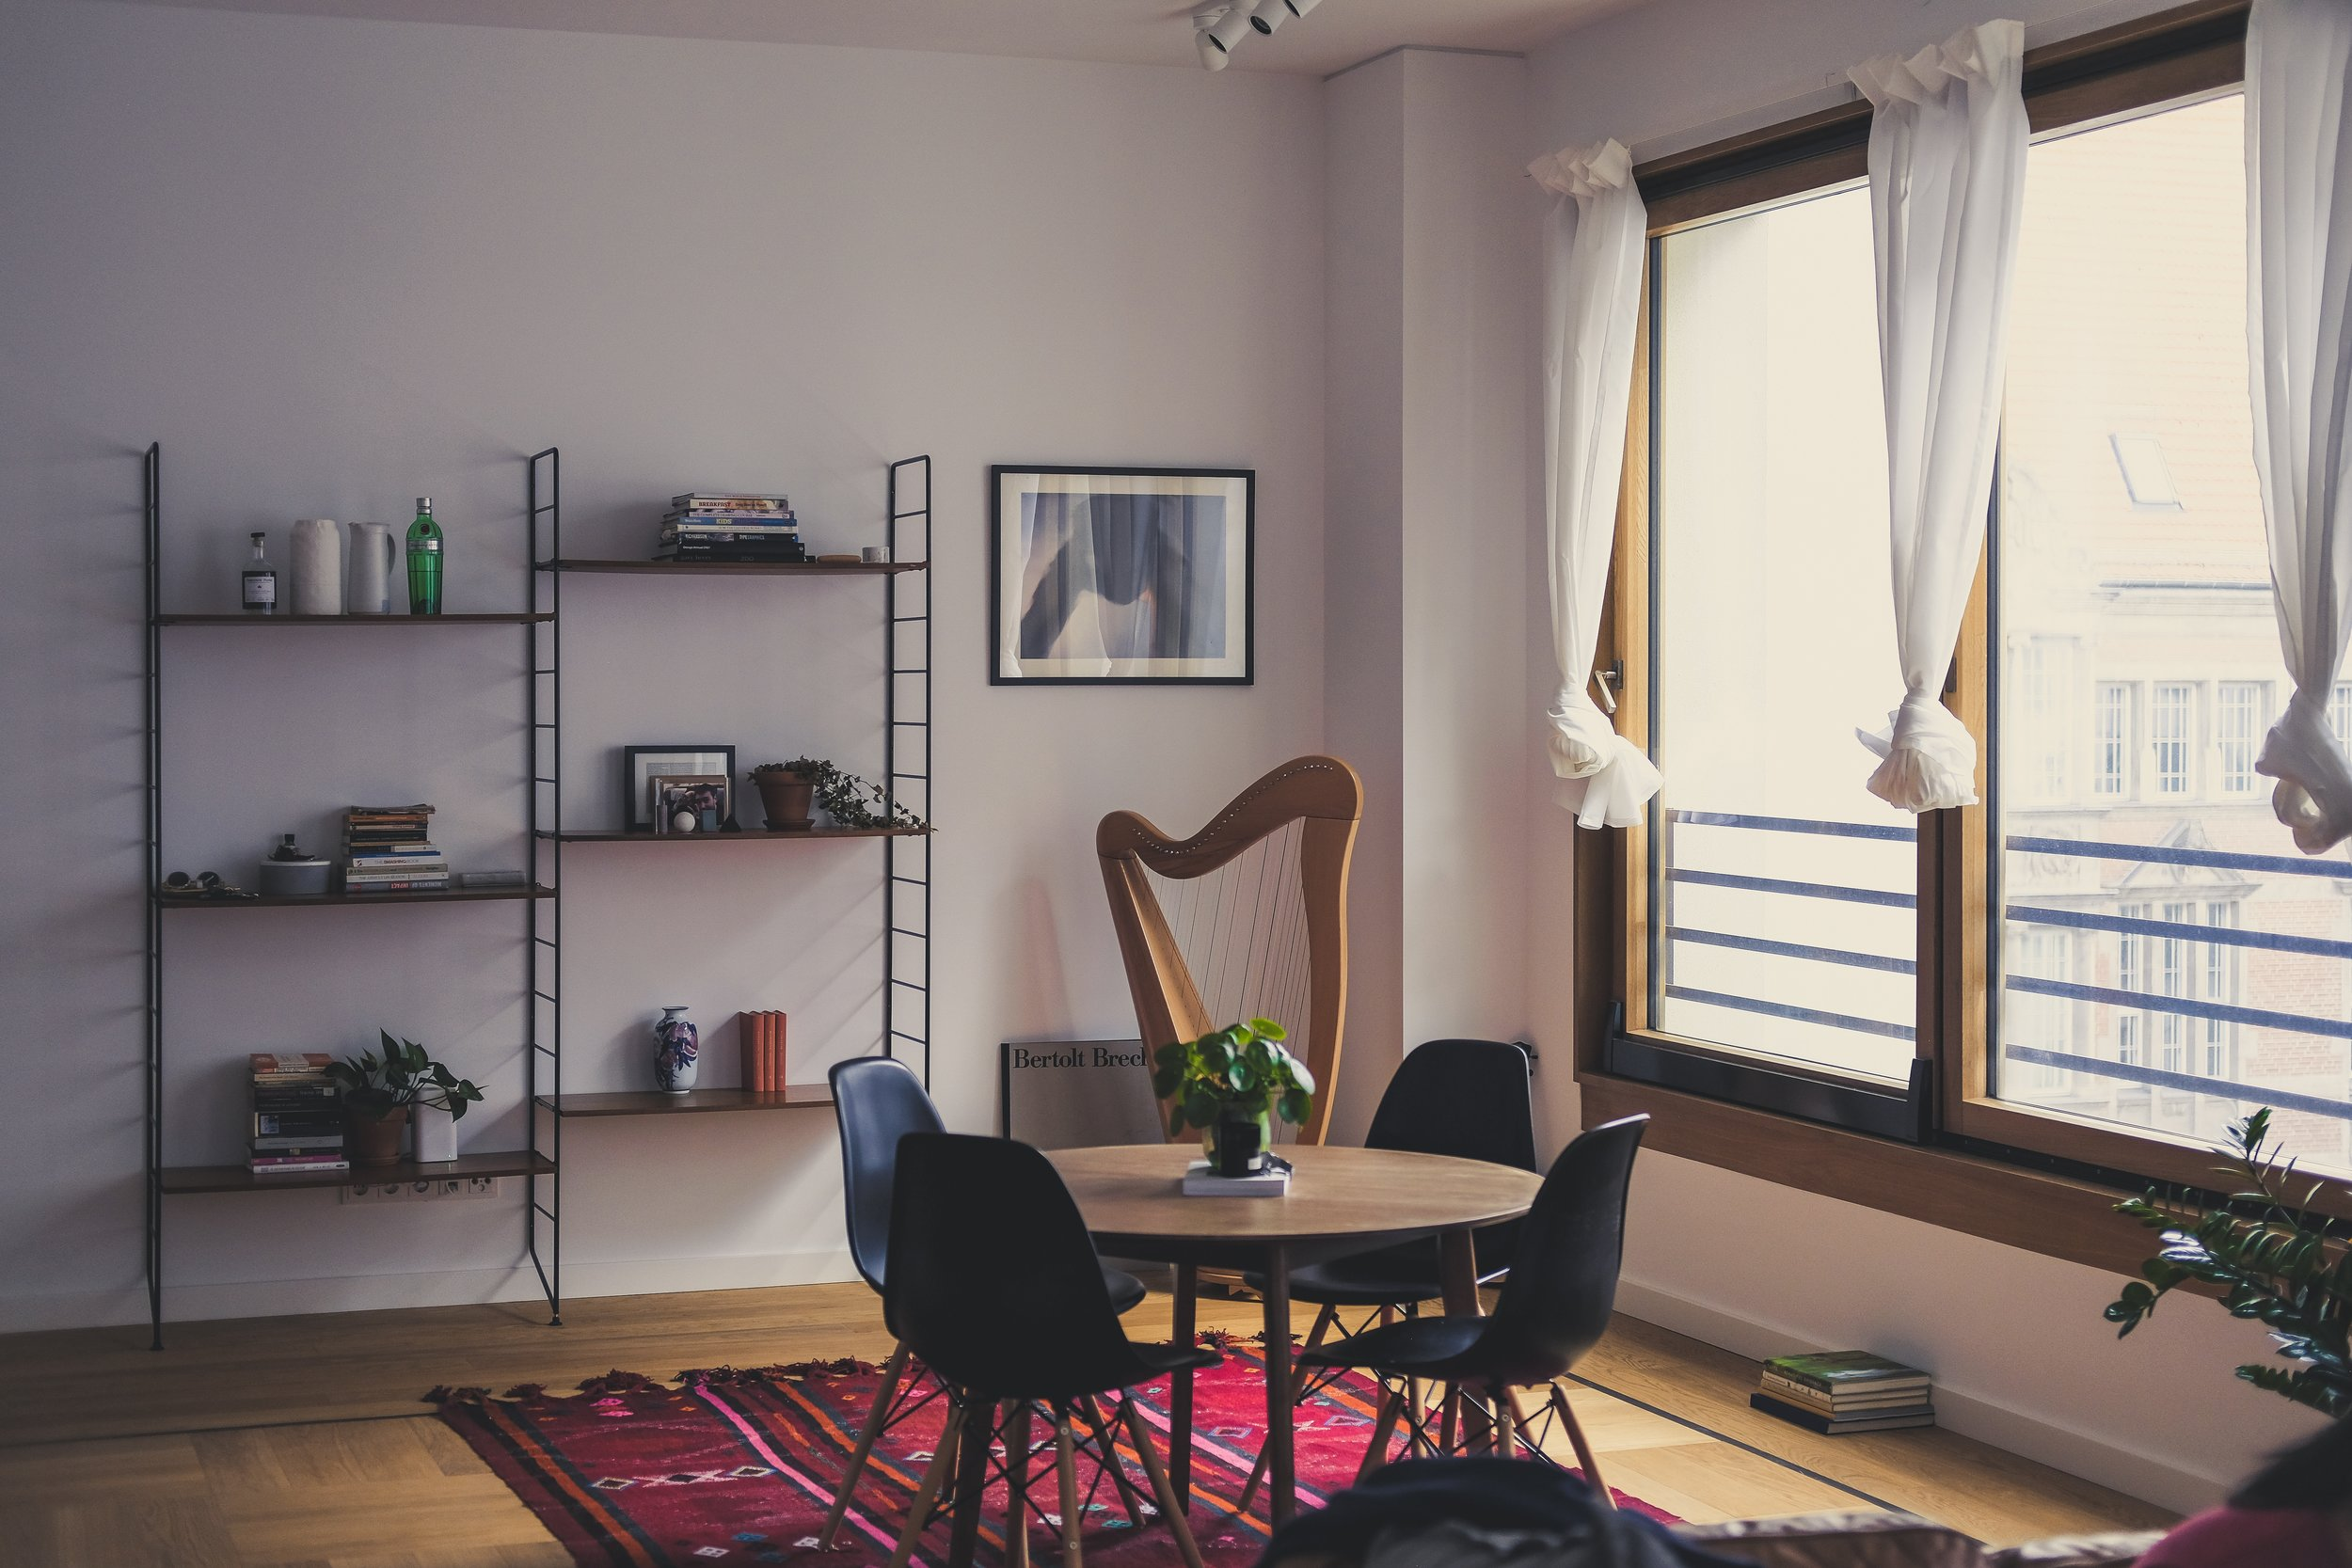 Renting an Apartment vs. Buying an Apartment